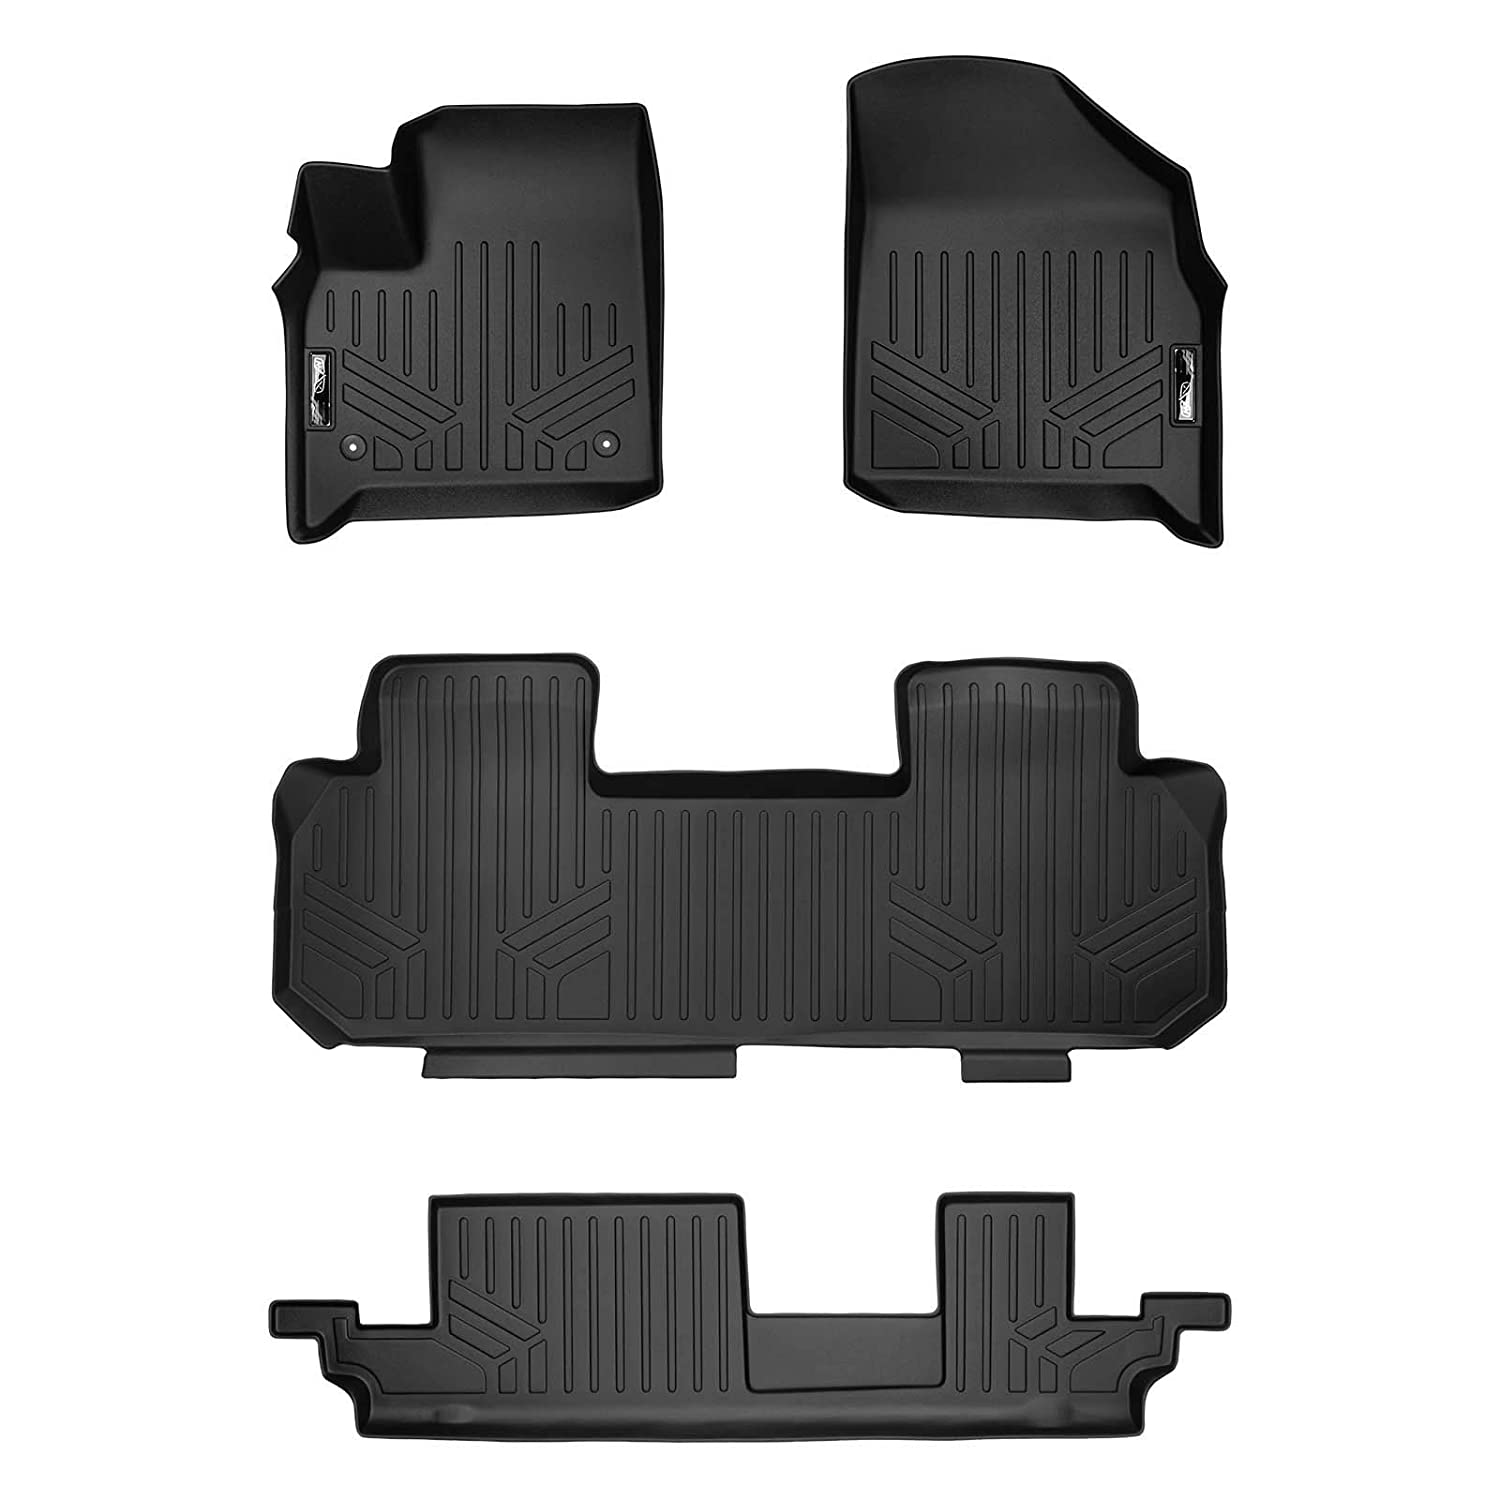 SMARTLINER Floor Mats 3 Row Liner Set Black for 2018-2019 Chevrolet Traverse with 2nd Row Bench Seat